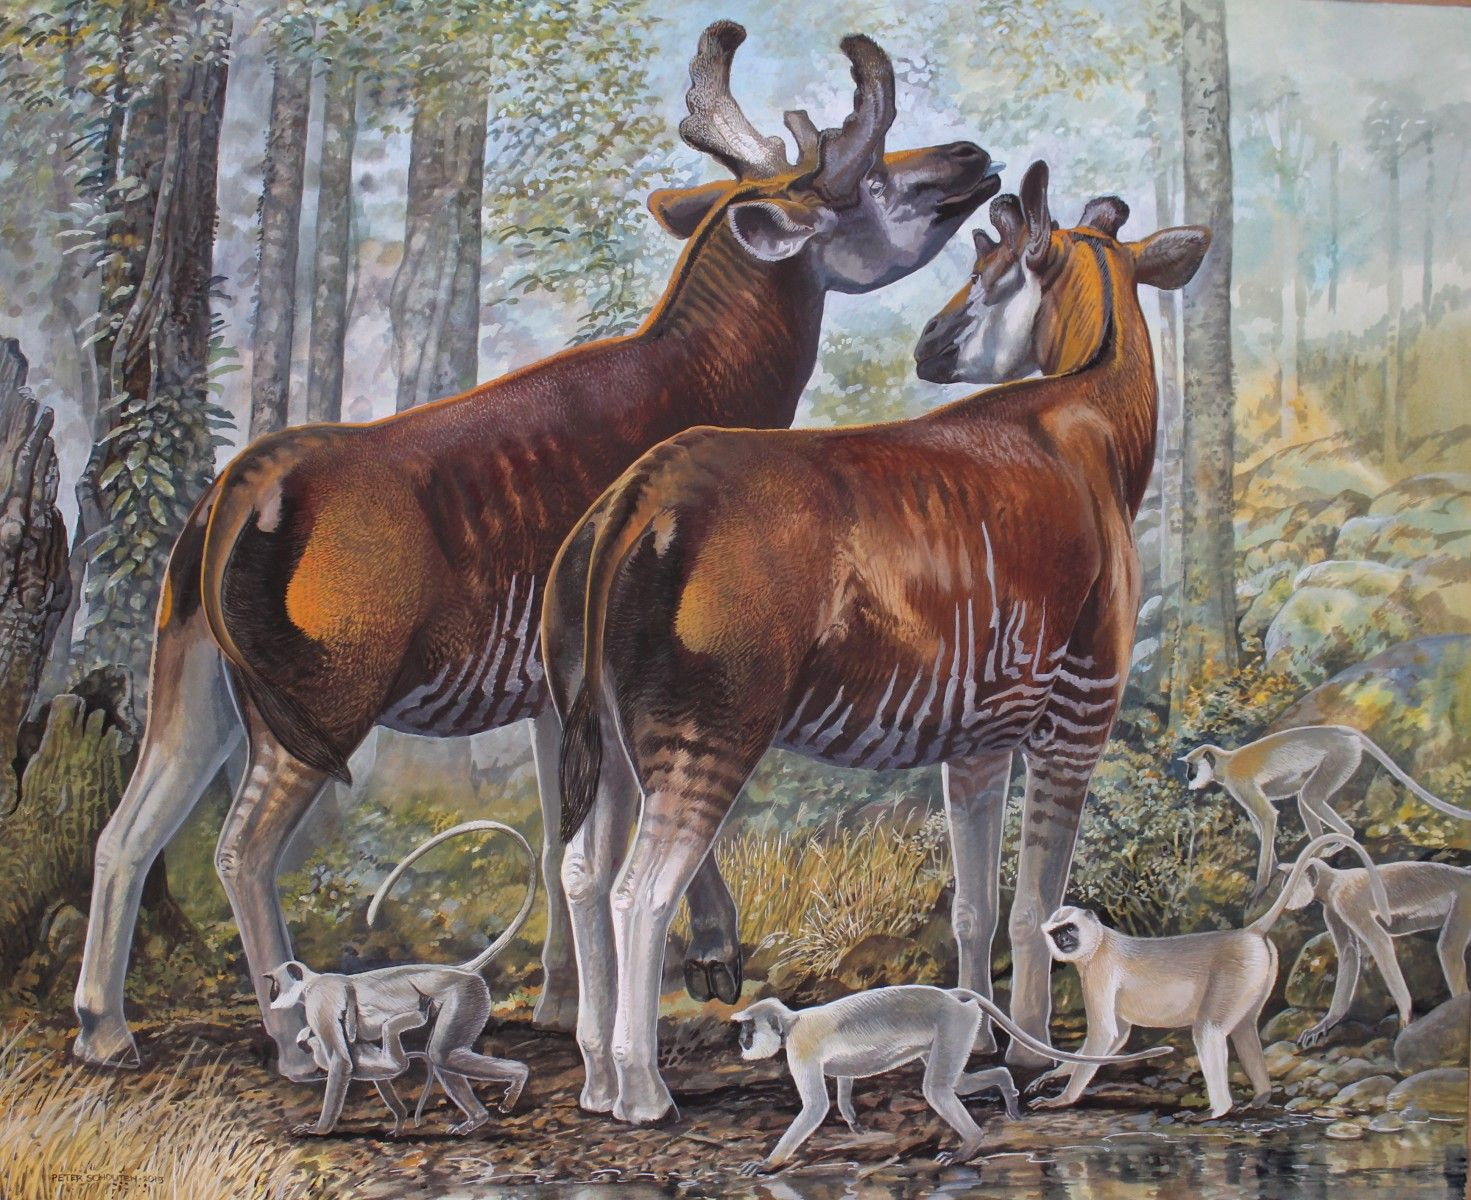 Sivatherium giganteum and Presbytis entellus by Peter